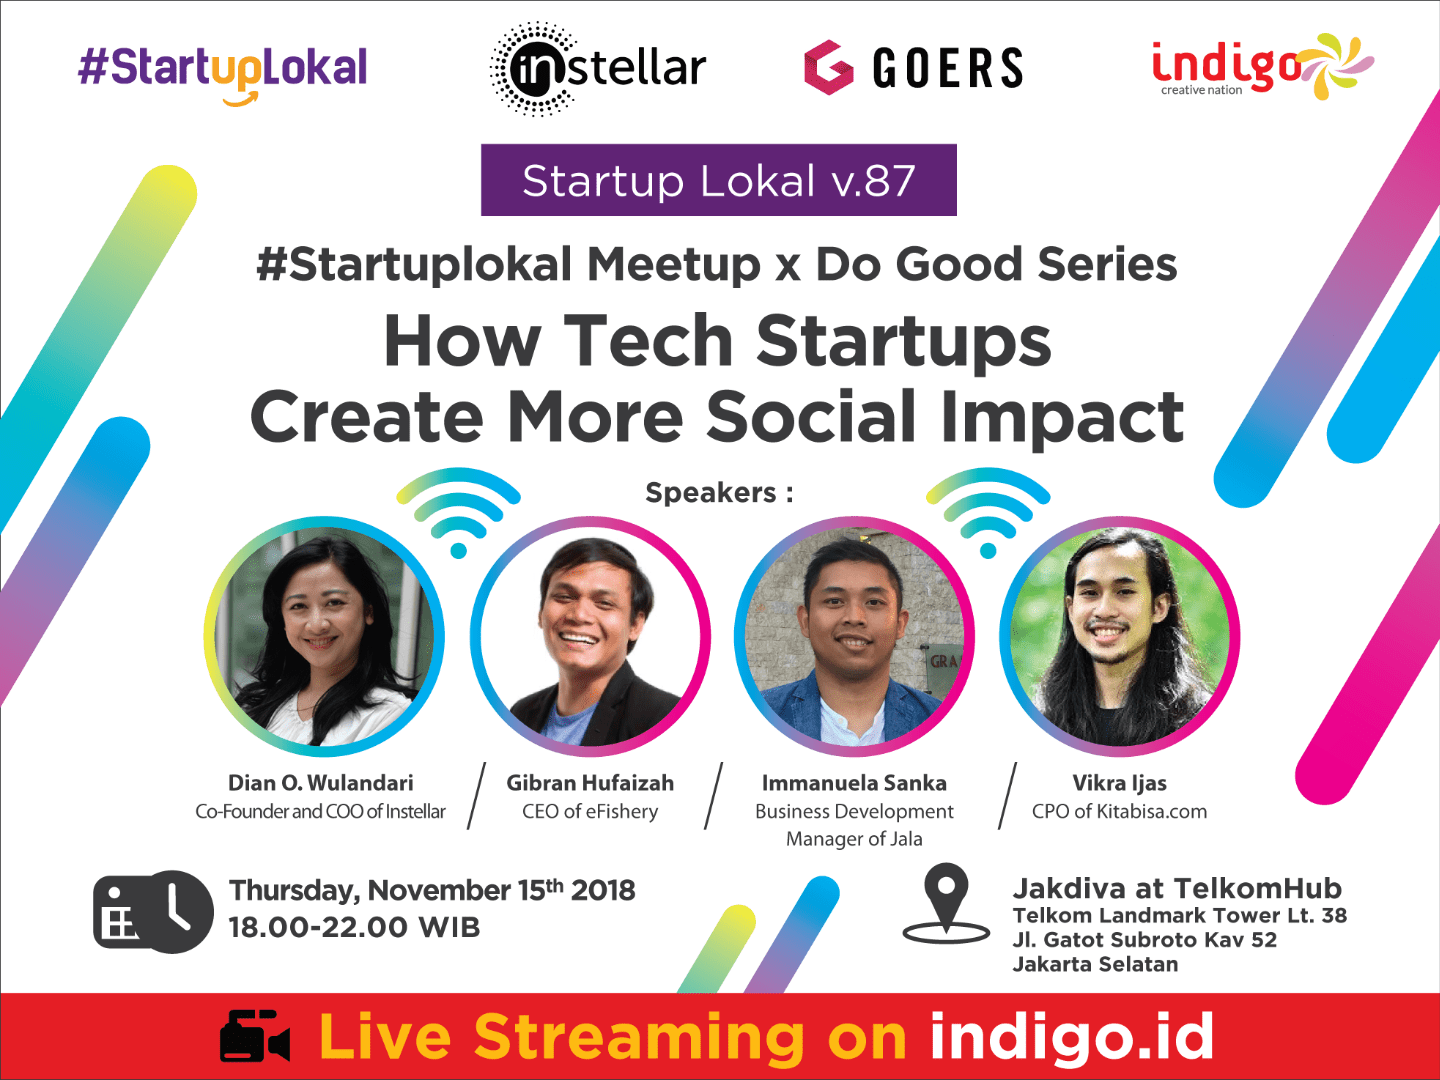 Startuplokal x Do Good Series Meetup v.87